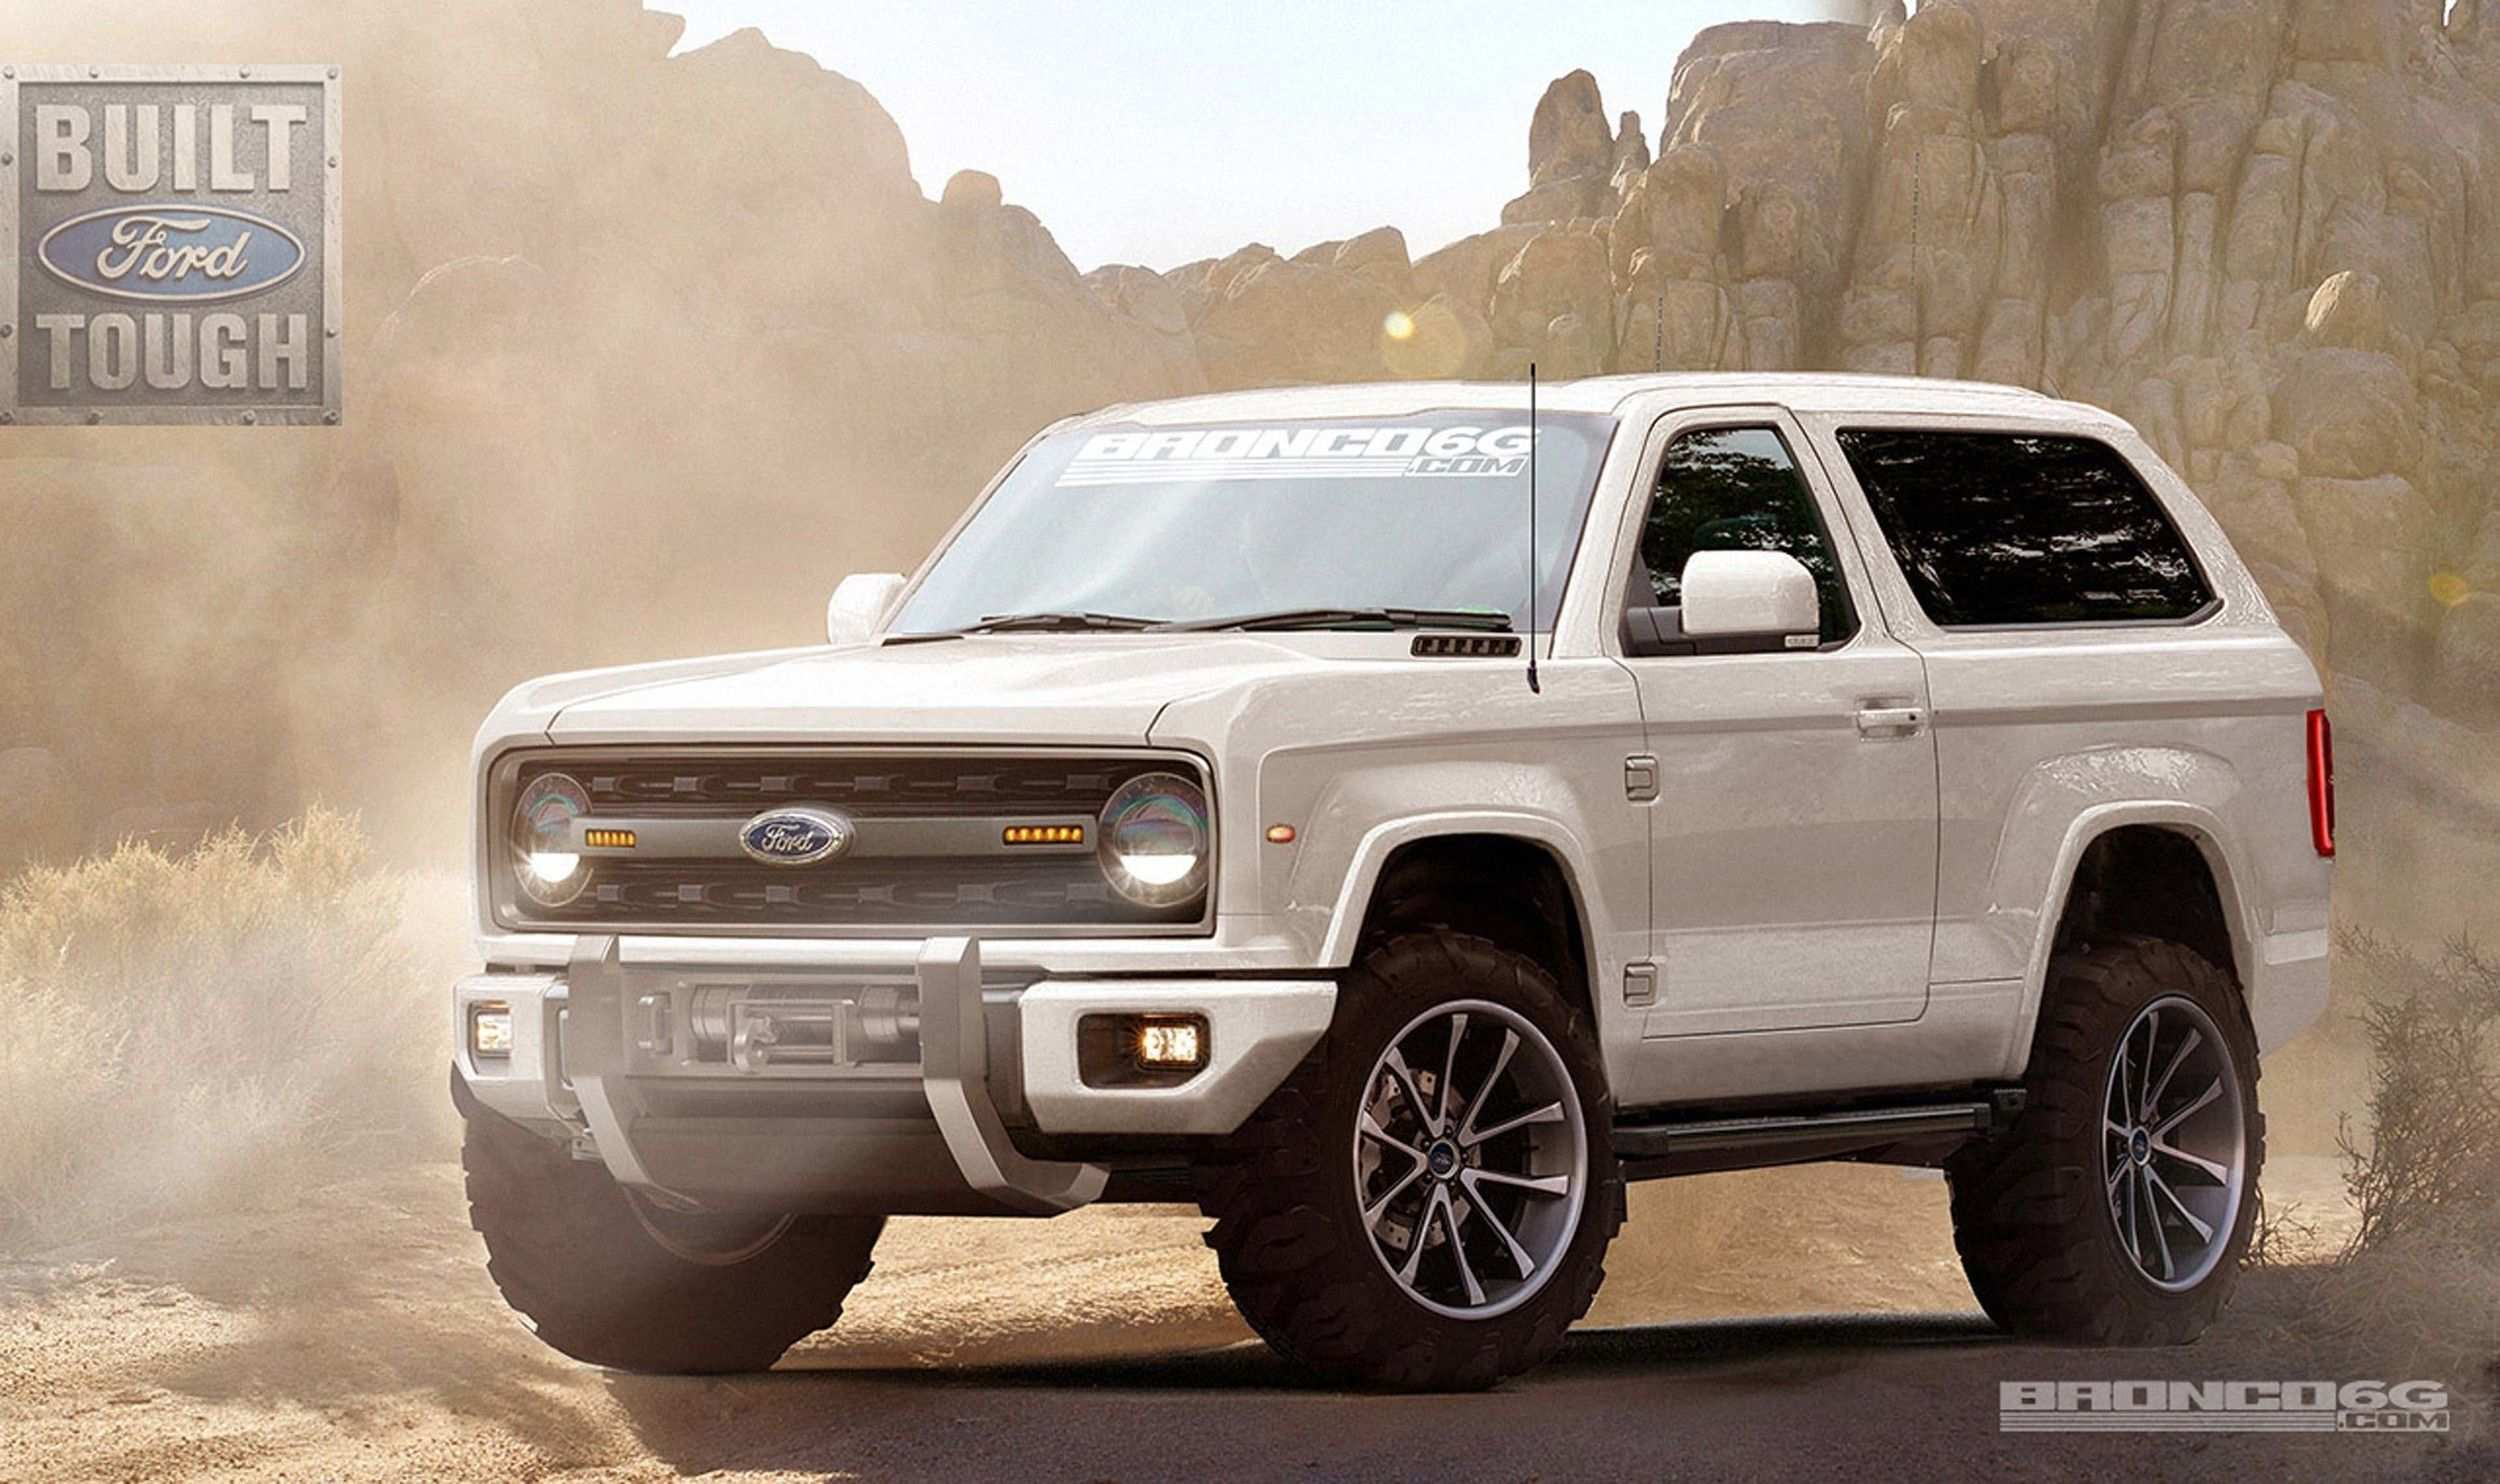 64 All New 2020 Ford Bronco Wallpaper First Drive